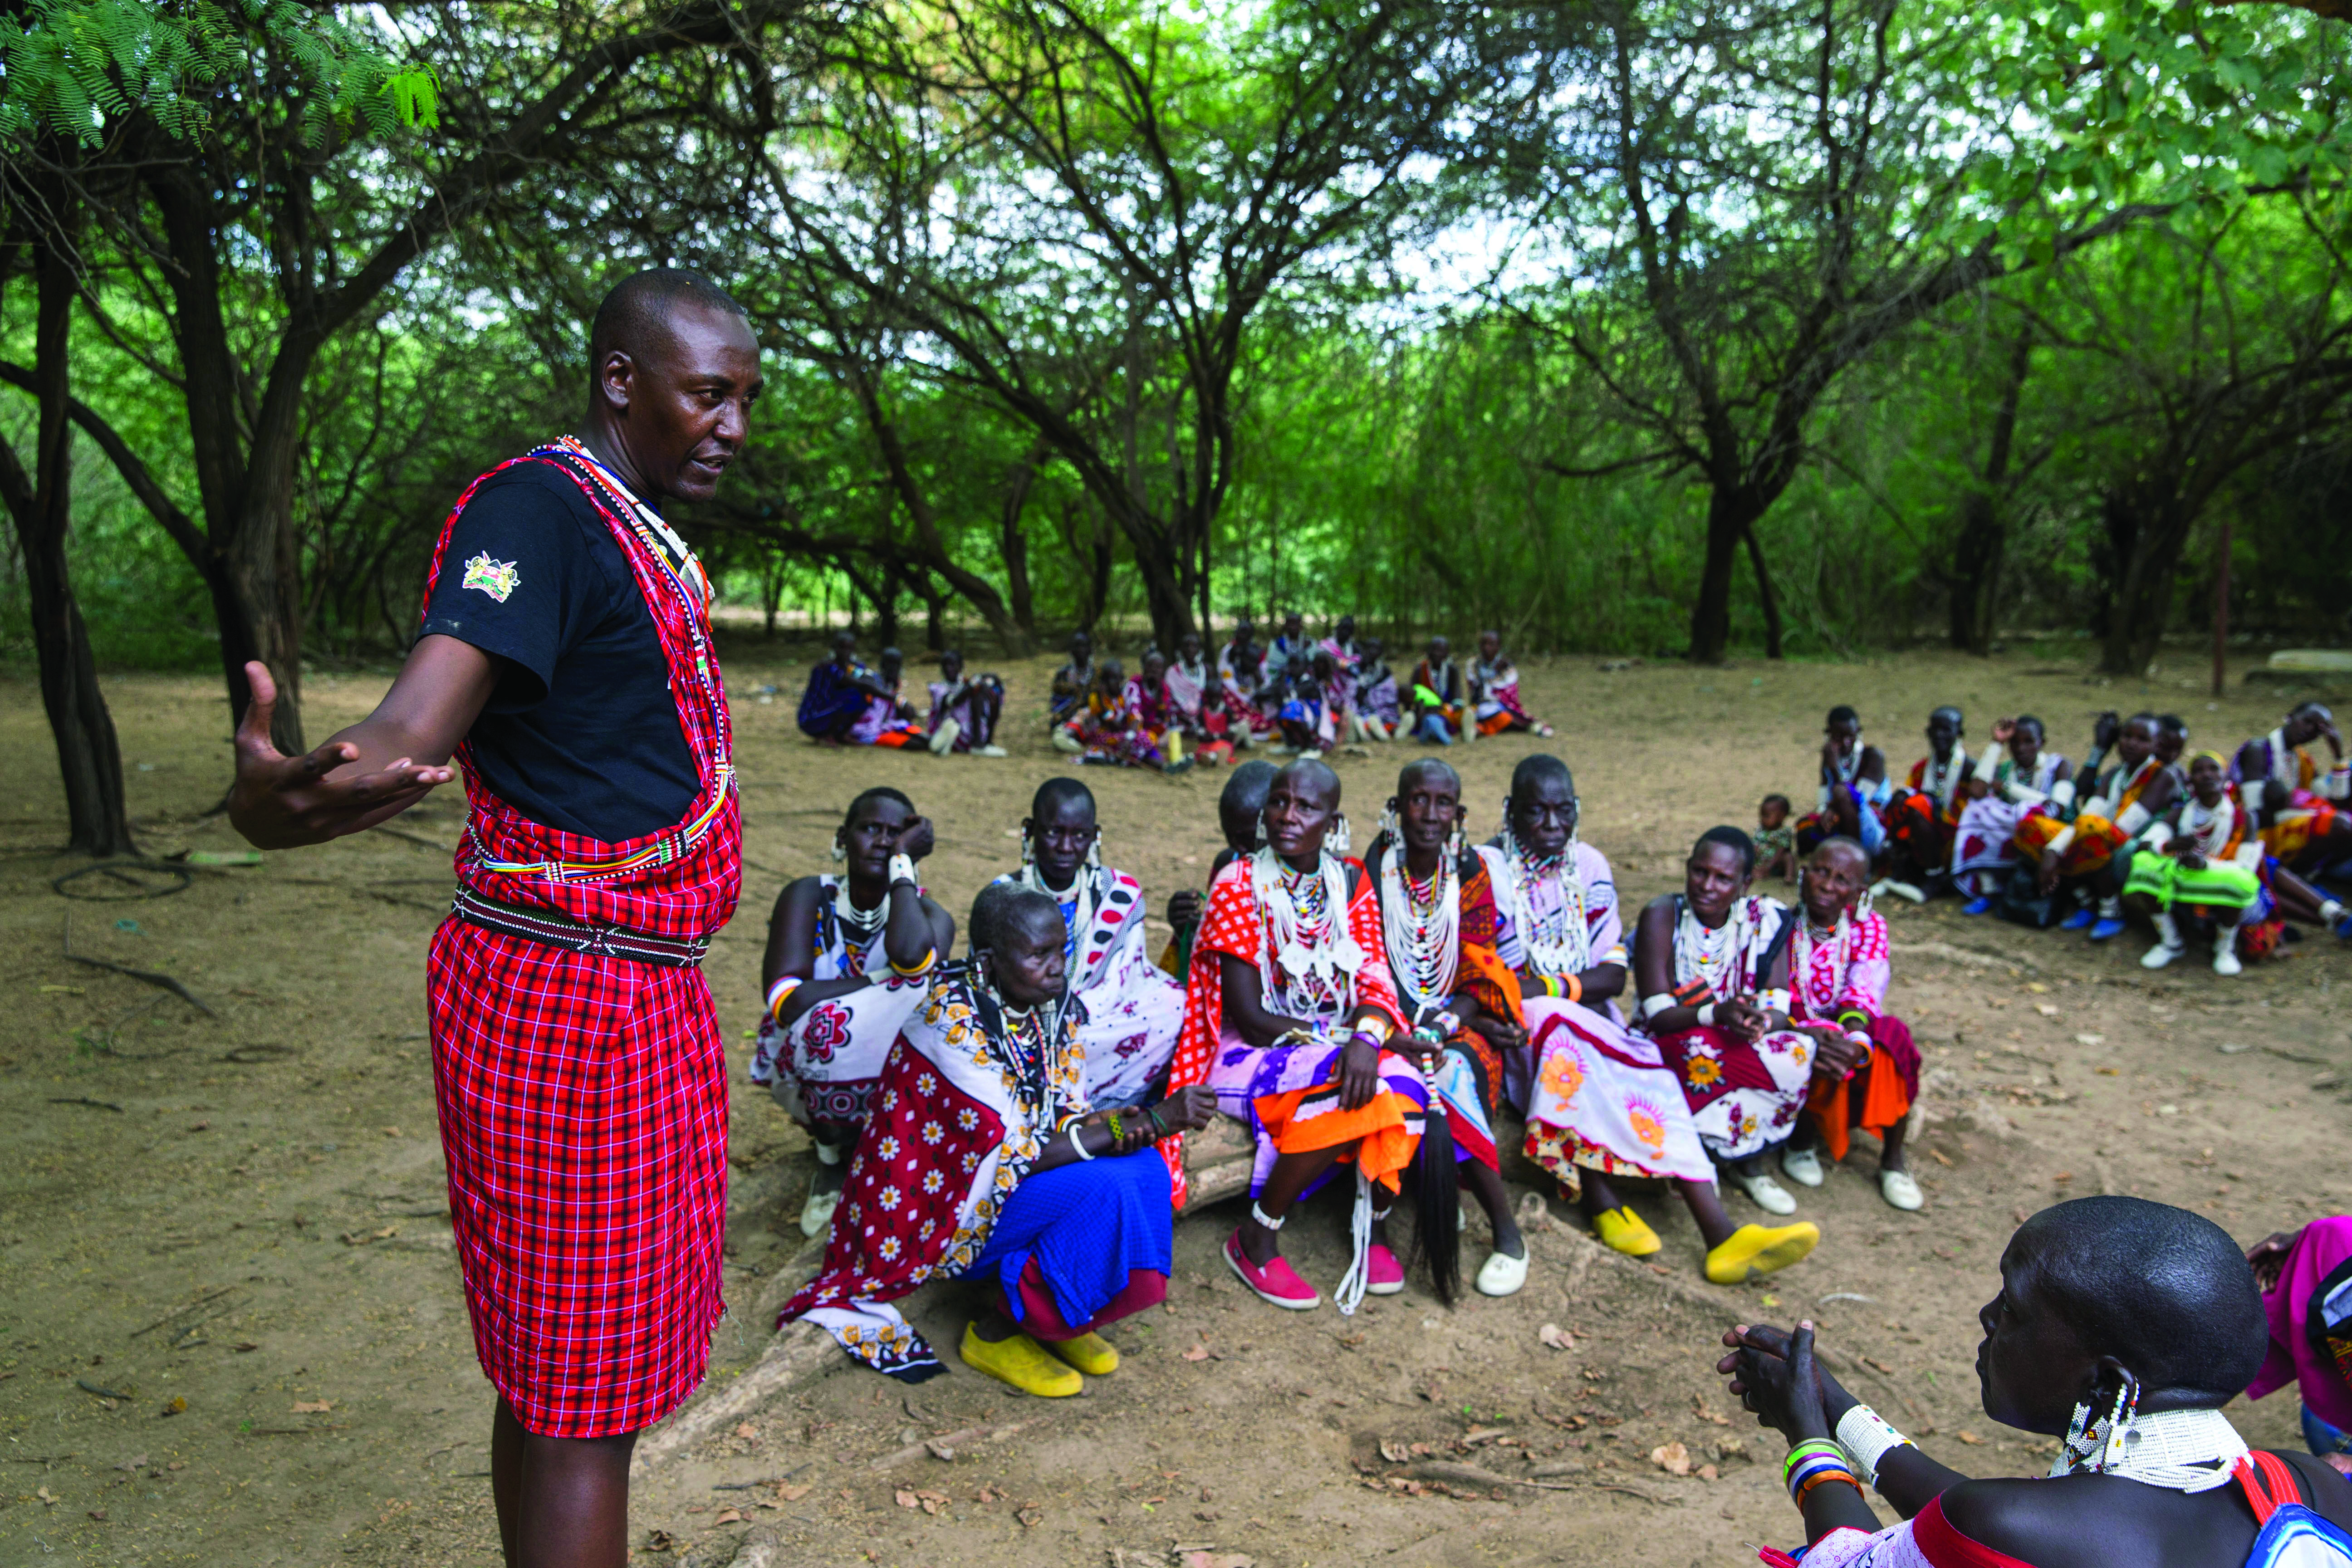 Maasai tribe elders and women gather for a forum organized by AMREF, and geared at sensitizing the elders and women towards an alternative rights of passage for young girls, that would stop female circumcision.